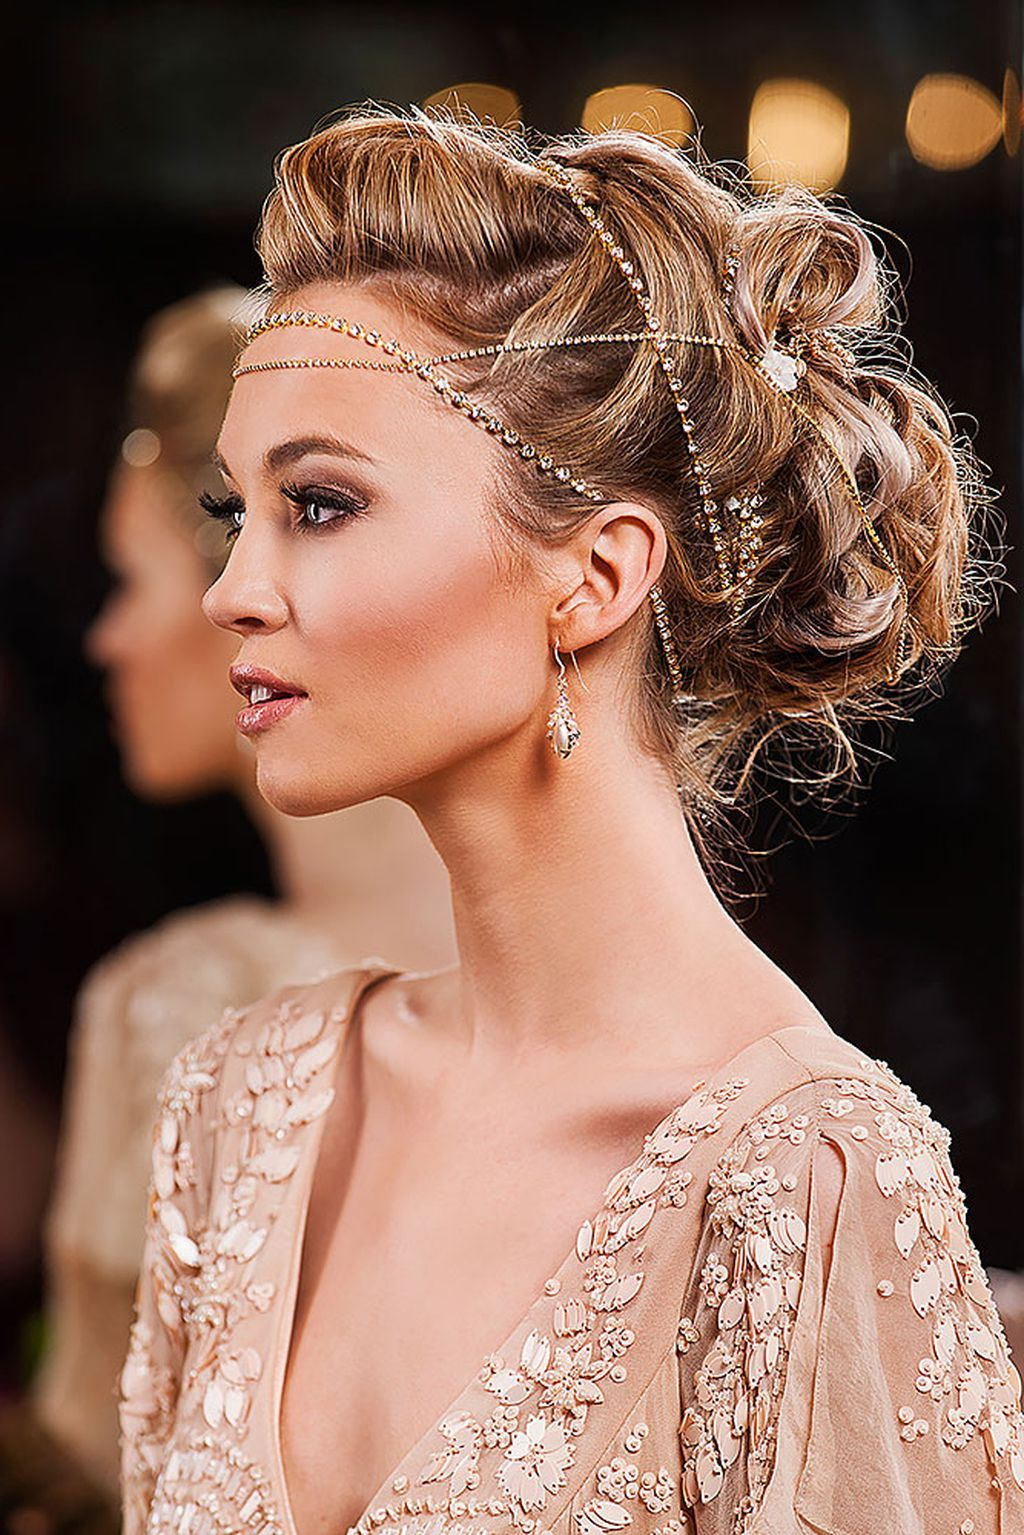 135 Stunning Bohemian Wedding Hairstyle Ideas Every Women Will Love Intended For Bohemian Short Hairstyles (View 18 of 25)